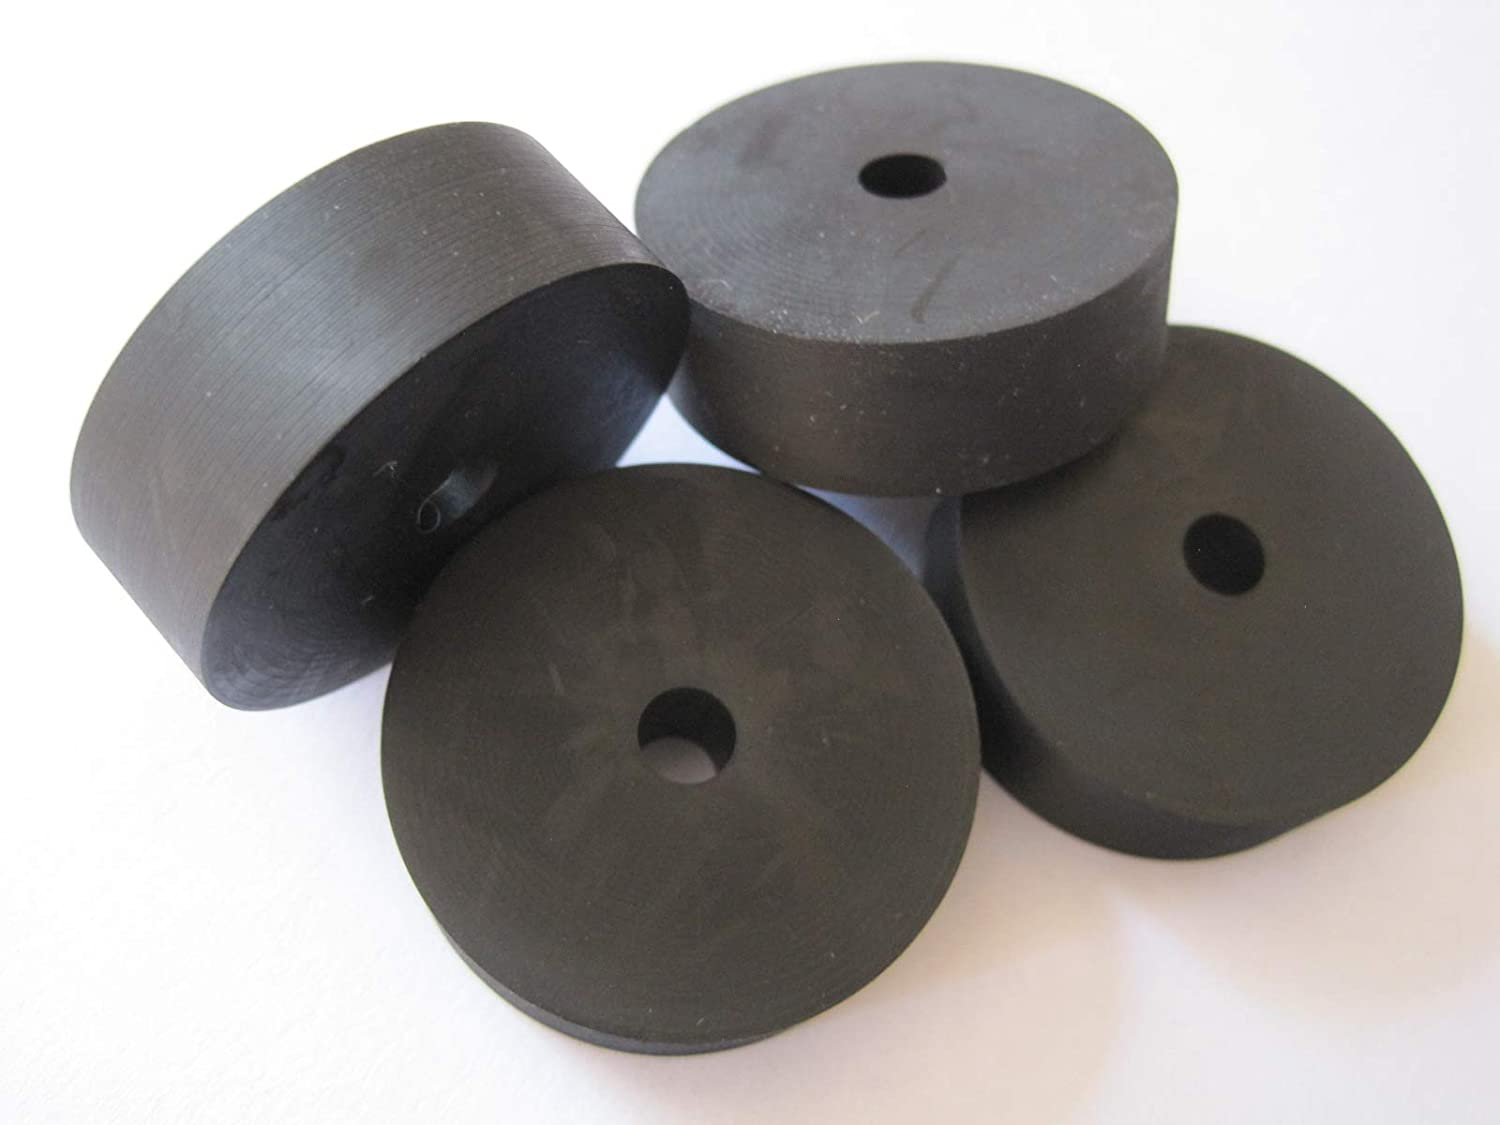 """Thick Rubber Round Spacers 1//4/"""" Thick 1//2/"""" ID x 1 1//2/"""" OD Various Pack Sizes"""